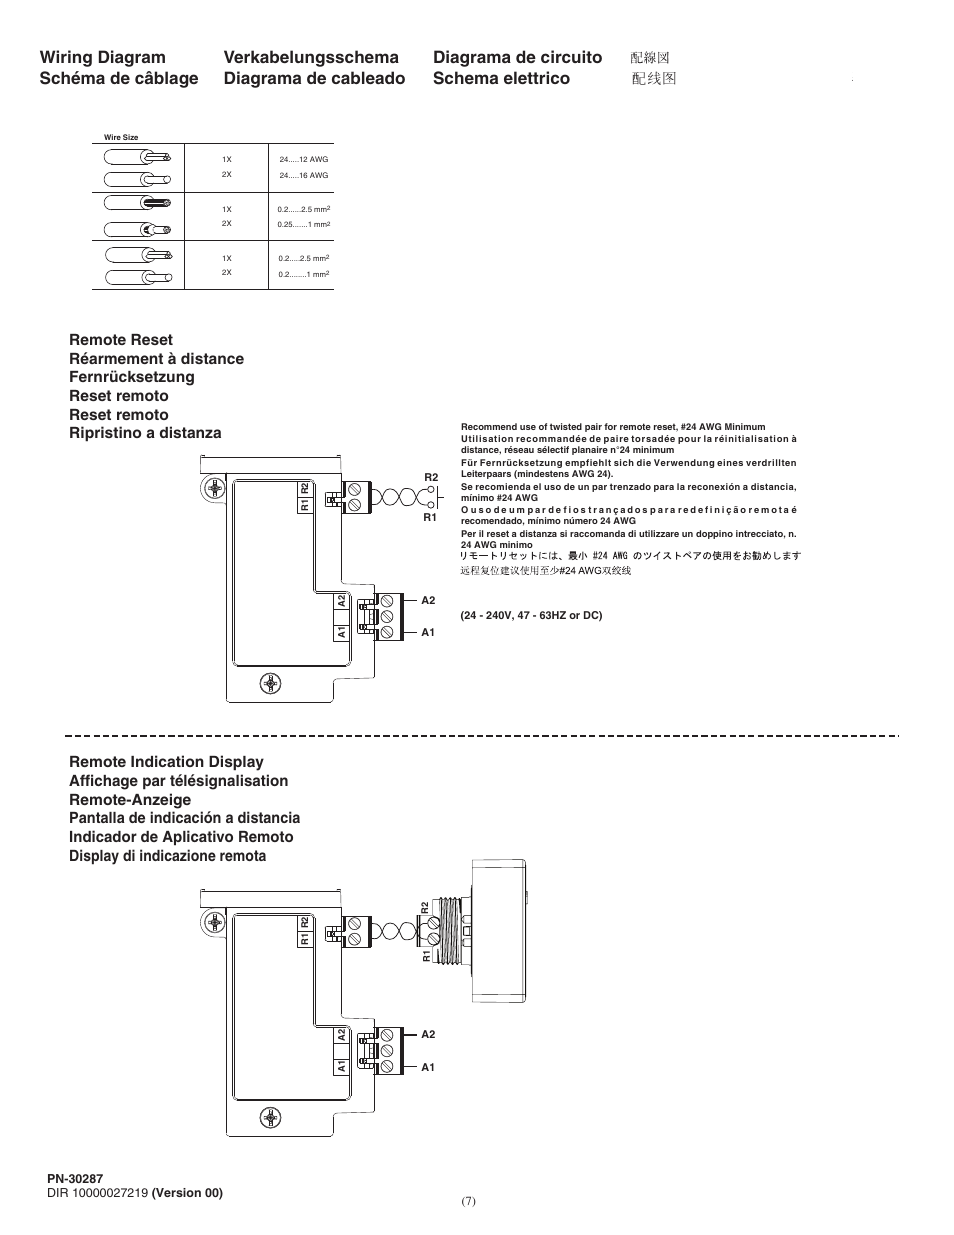 medium resolution of wiring diagram rockwell automation 193 err e1 plus remote reset accessory module user manual